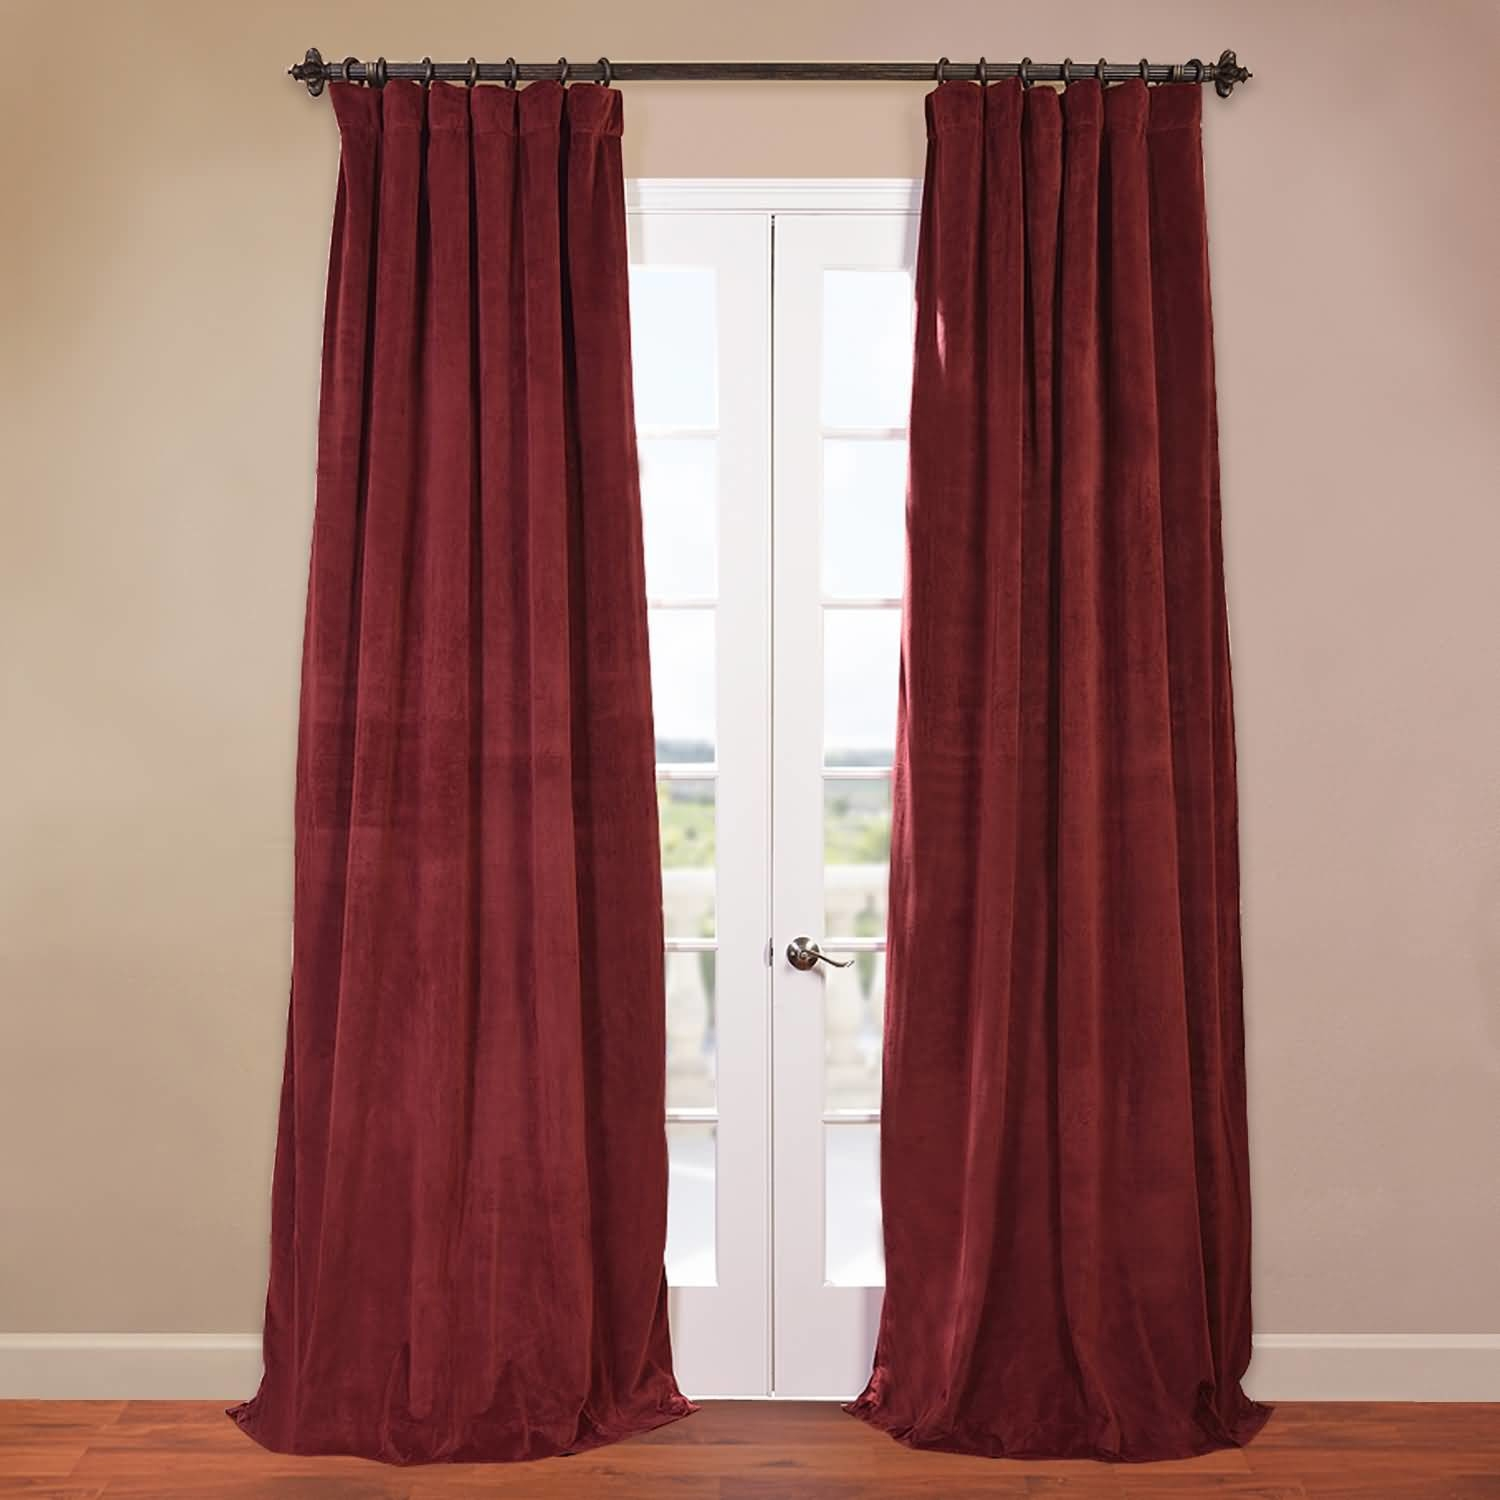 Curtains Exciting 96 Inch Curtains For Home Decoration Ideas Intended For 96 Inches Long Curtains (Image 18 of 25)